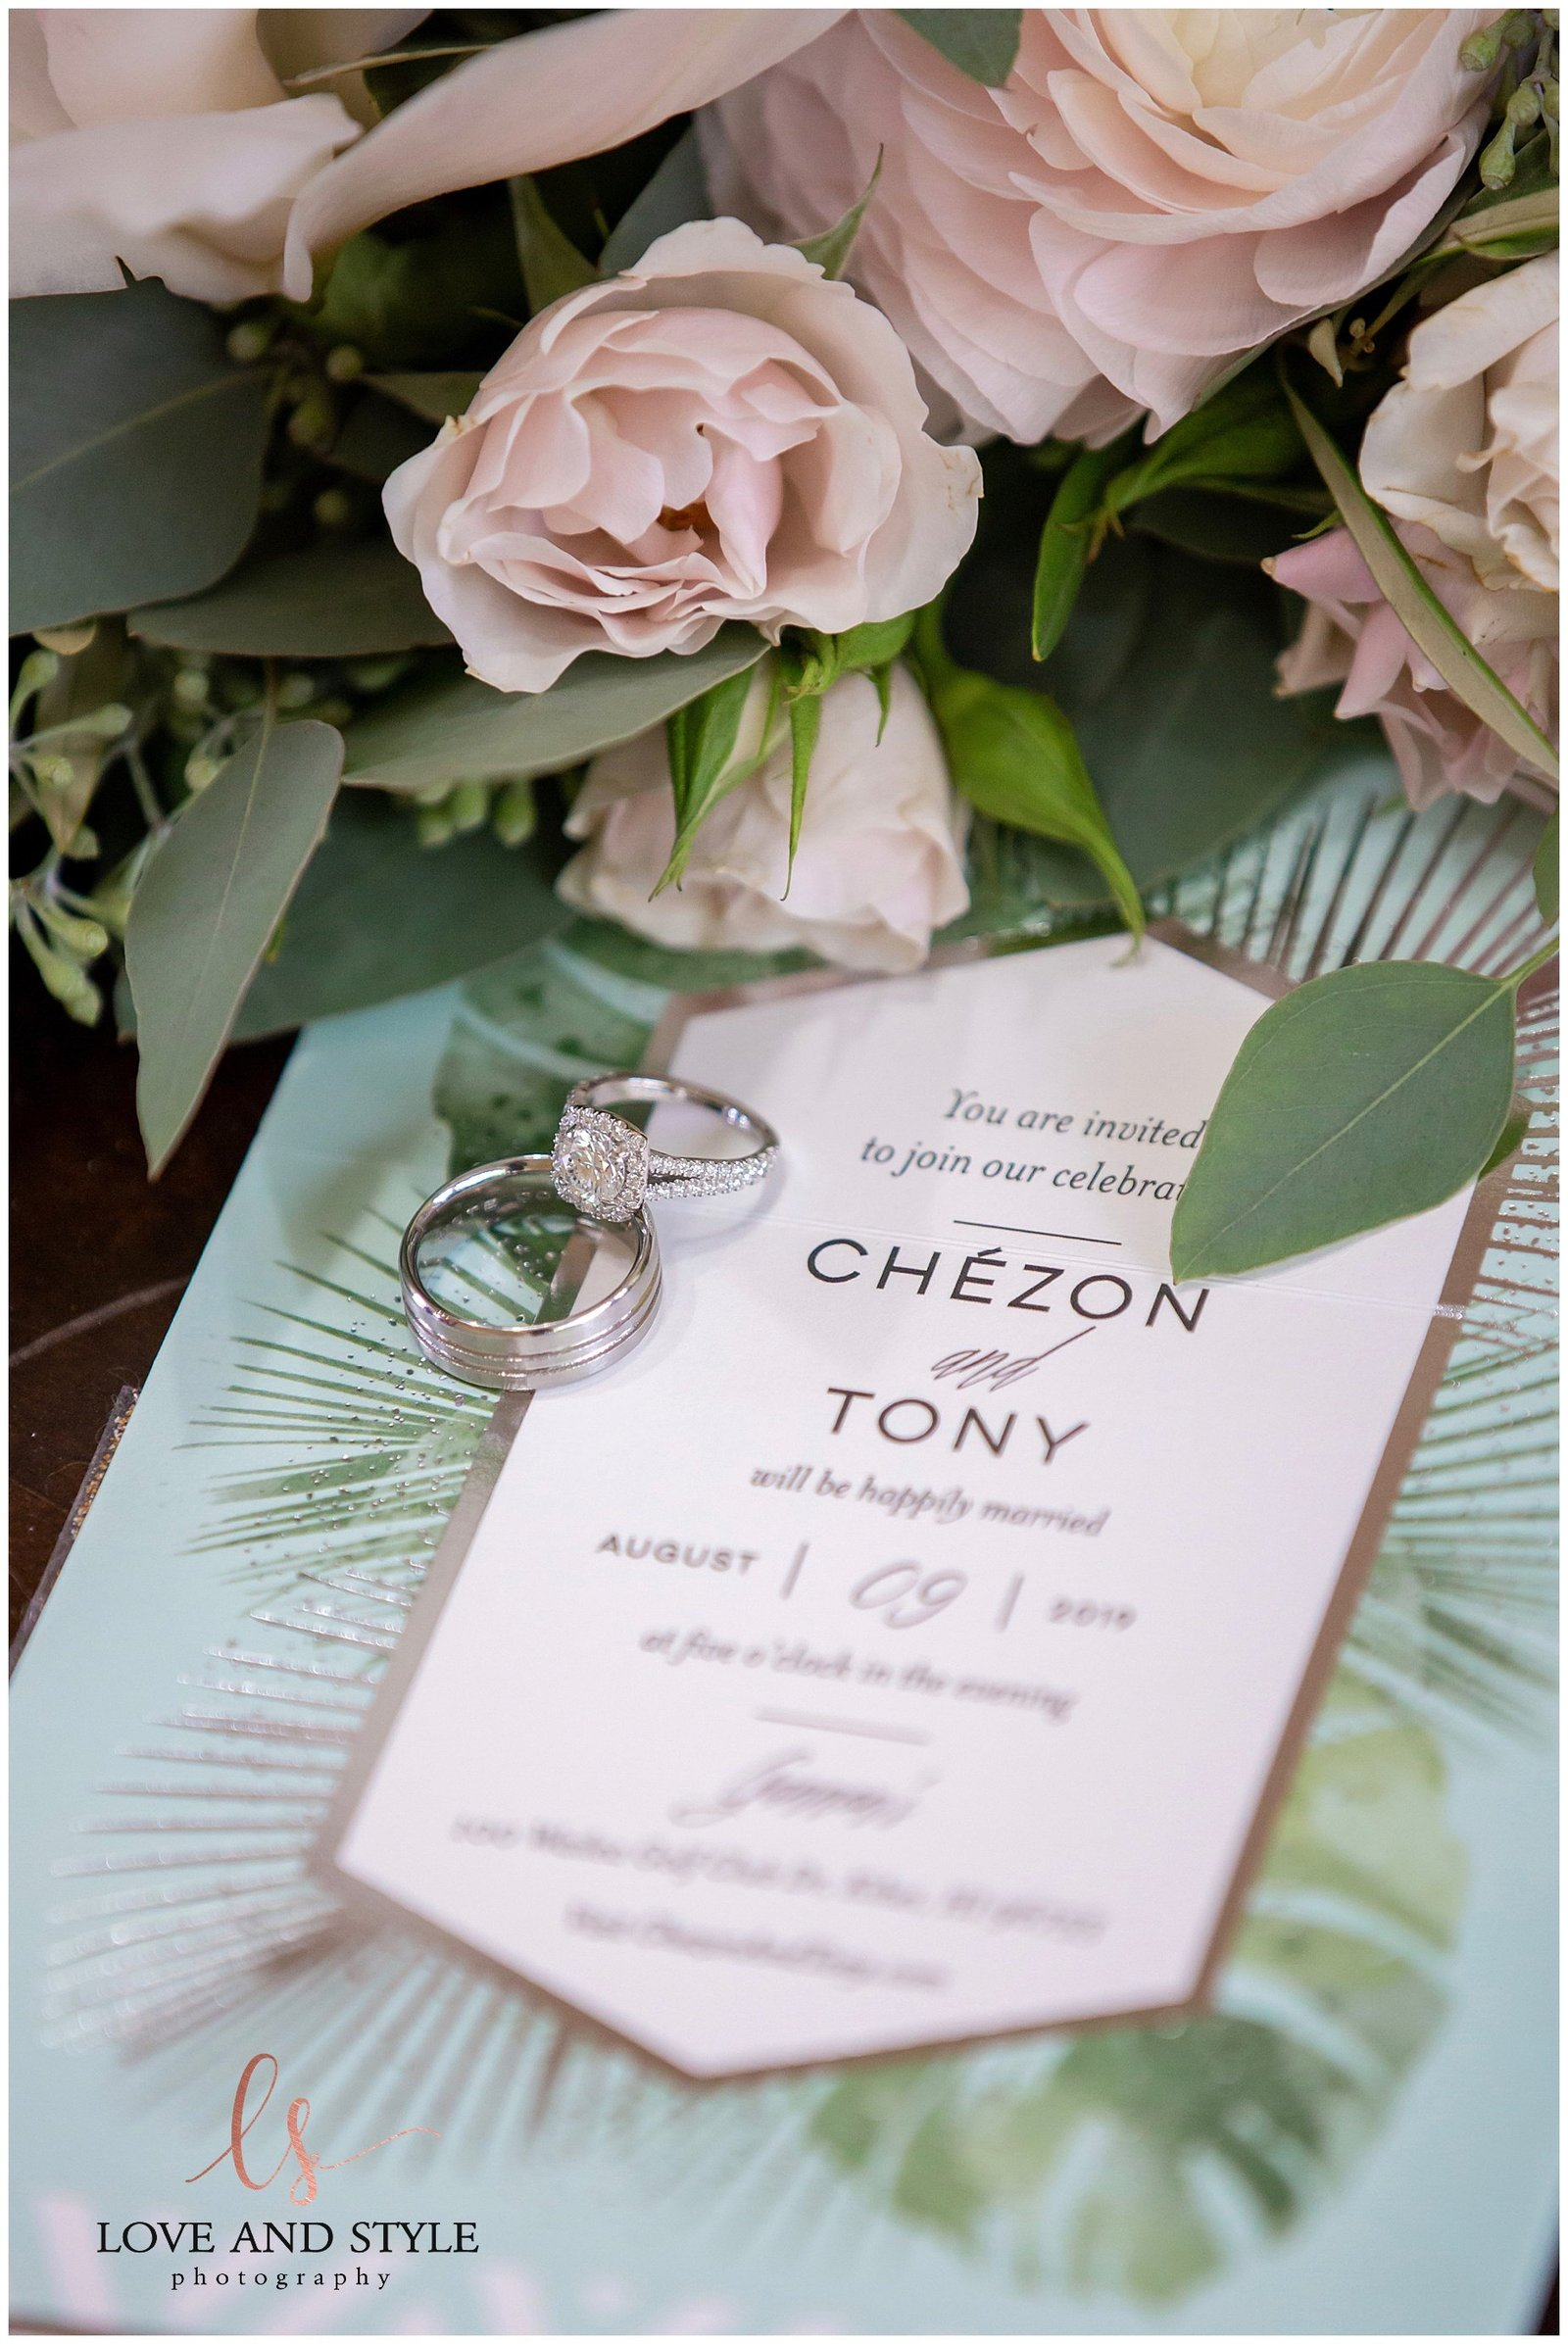 detail shot of a wedding invitation with the wedding rings